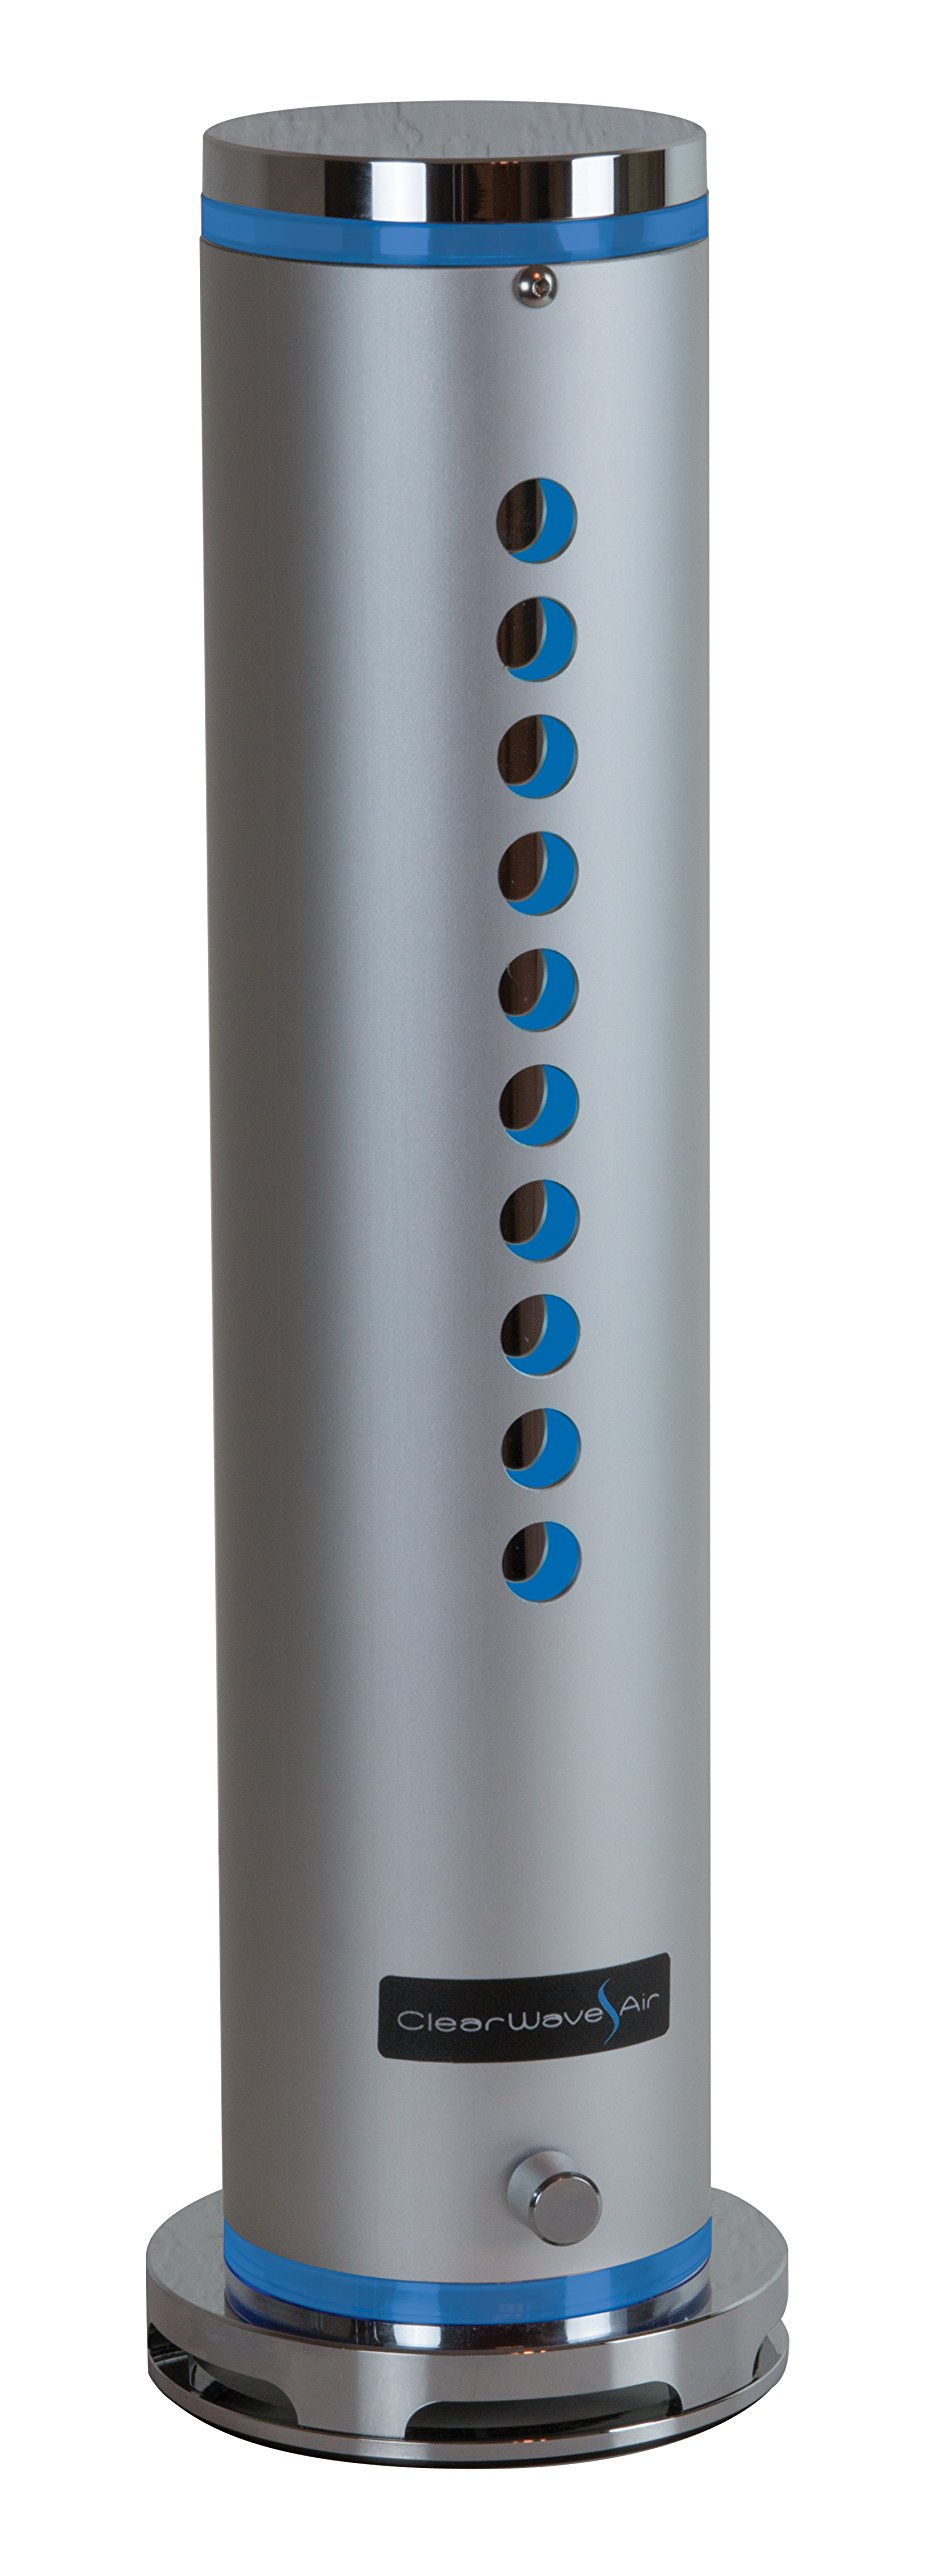 ClearWave Air UV-C Light Air Purification System - ULPA Air Purifier Kills 99.9% of Airborne Germs and Microbes Including Bacteria, Virus, Mold and Fungal Spores Which Can Trigger Asthma and Allergies